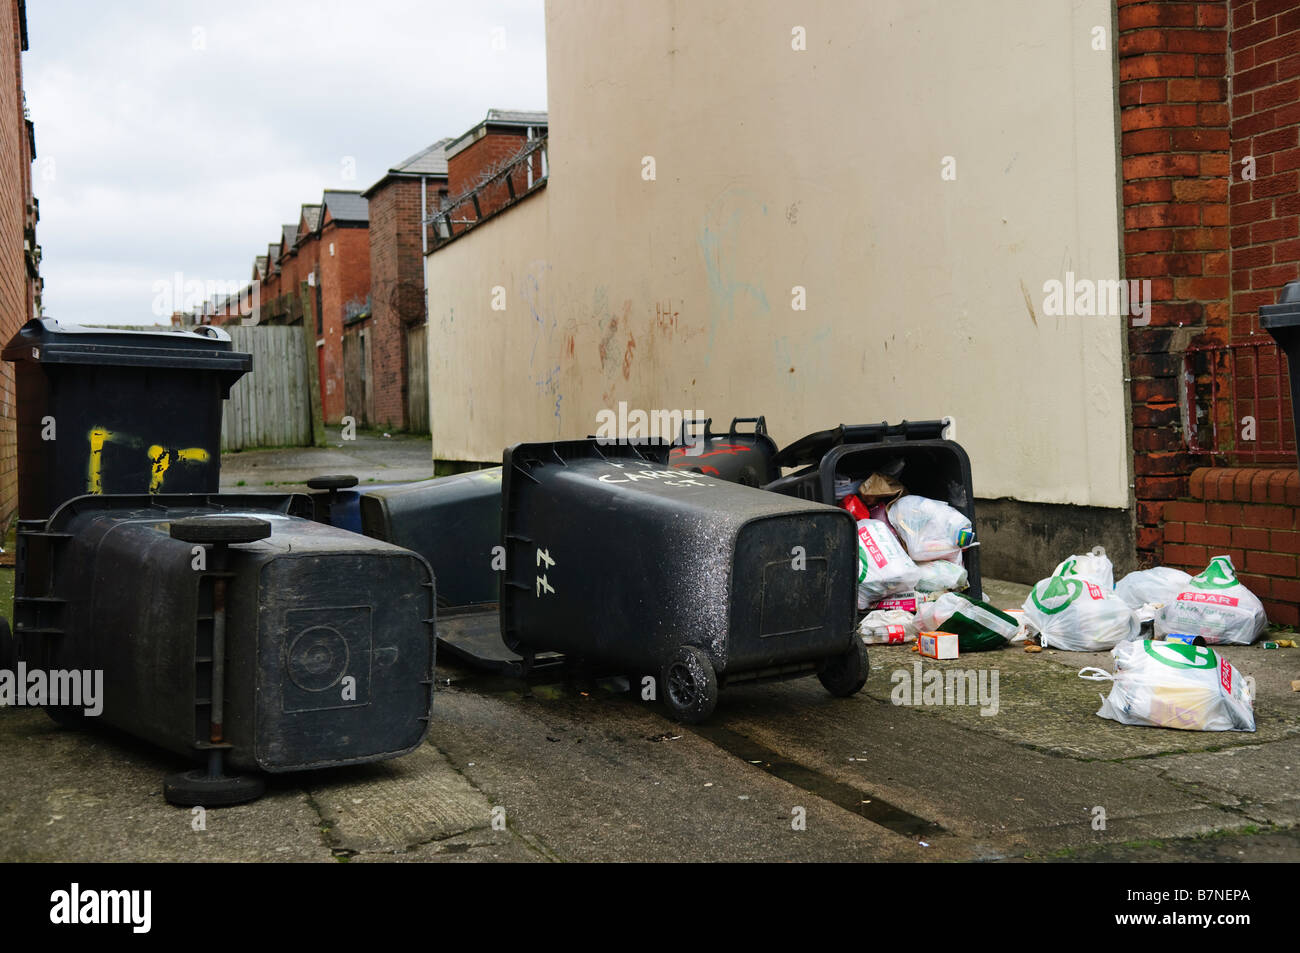 Household rubbish bins/trash cans lie toppled over on street with contents strewn over pavement/sidewalk/footpath Stock Photo